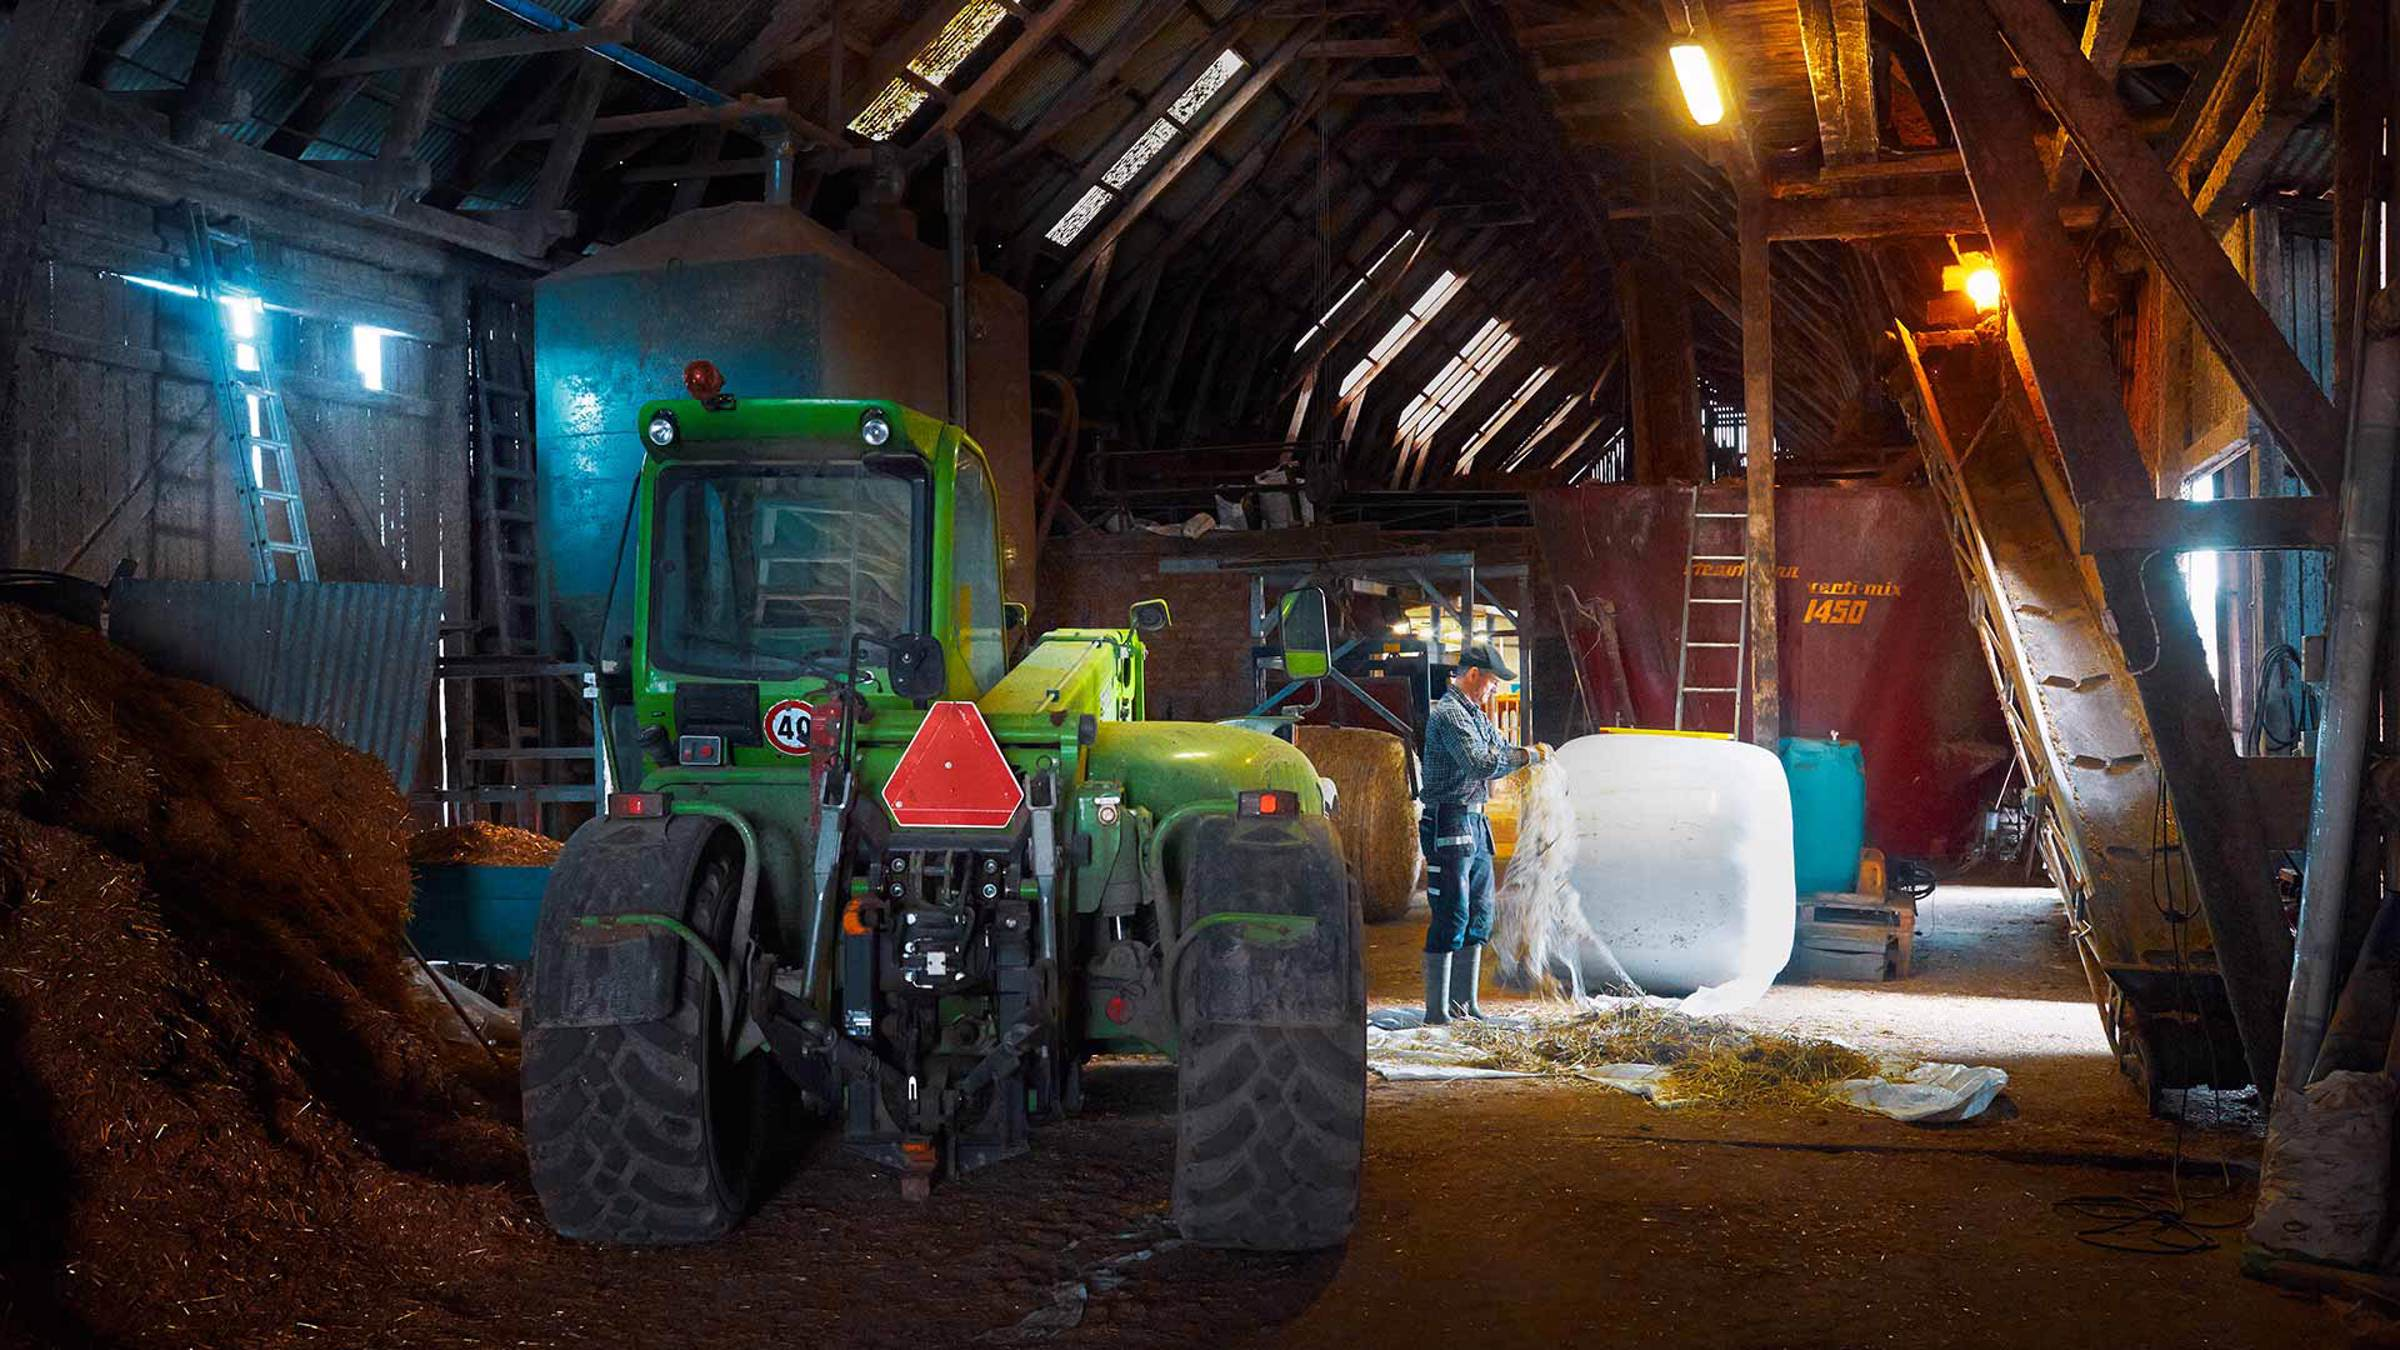 A farmer and his tractor in a barn